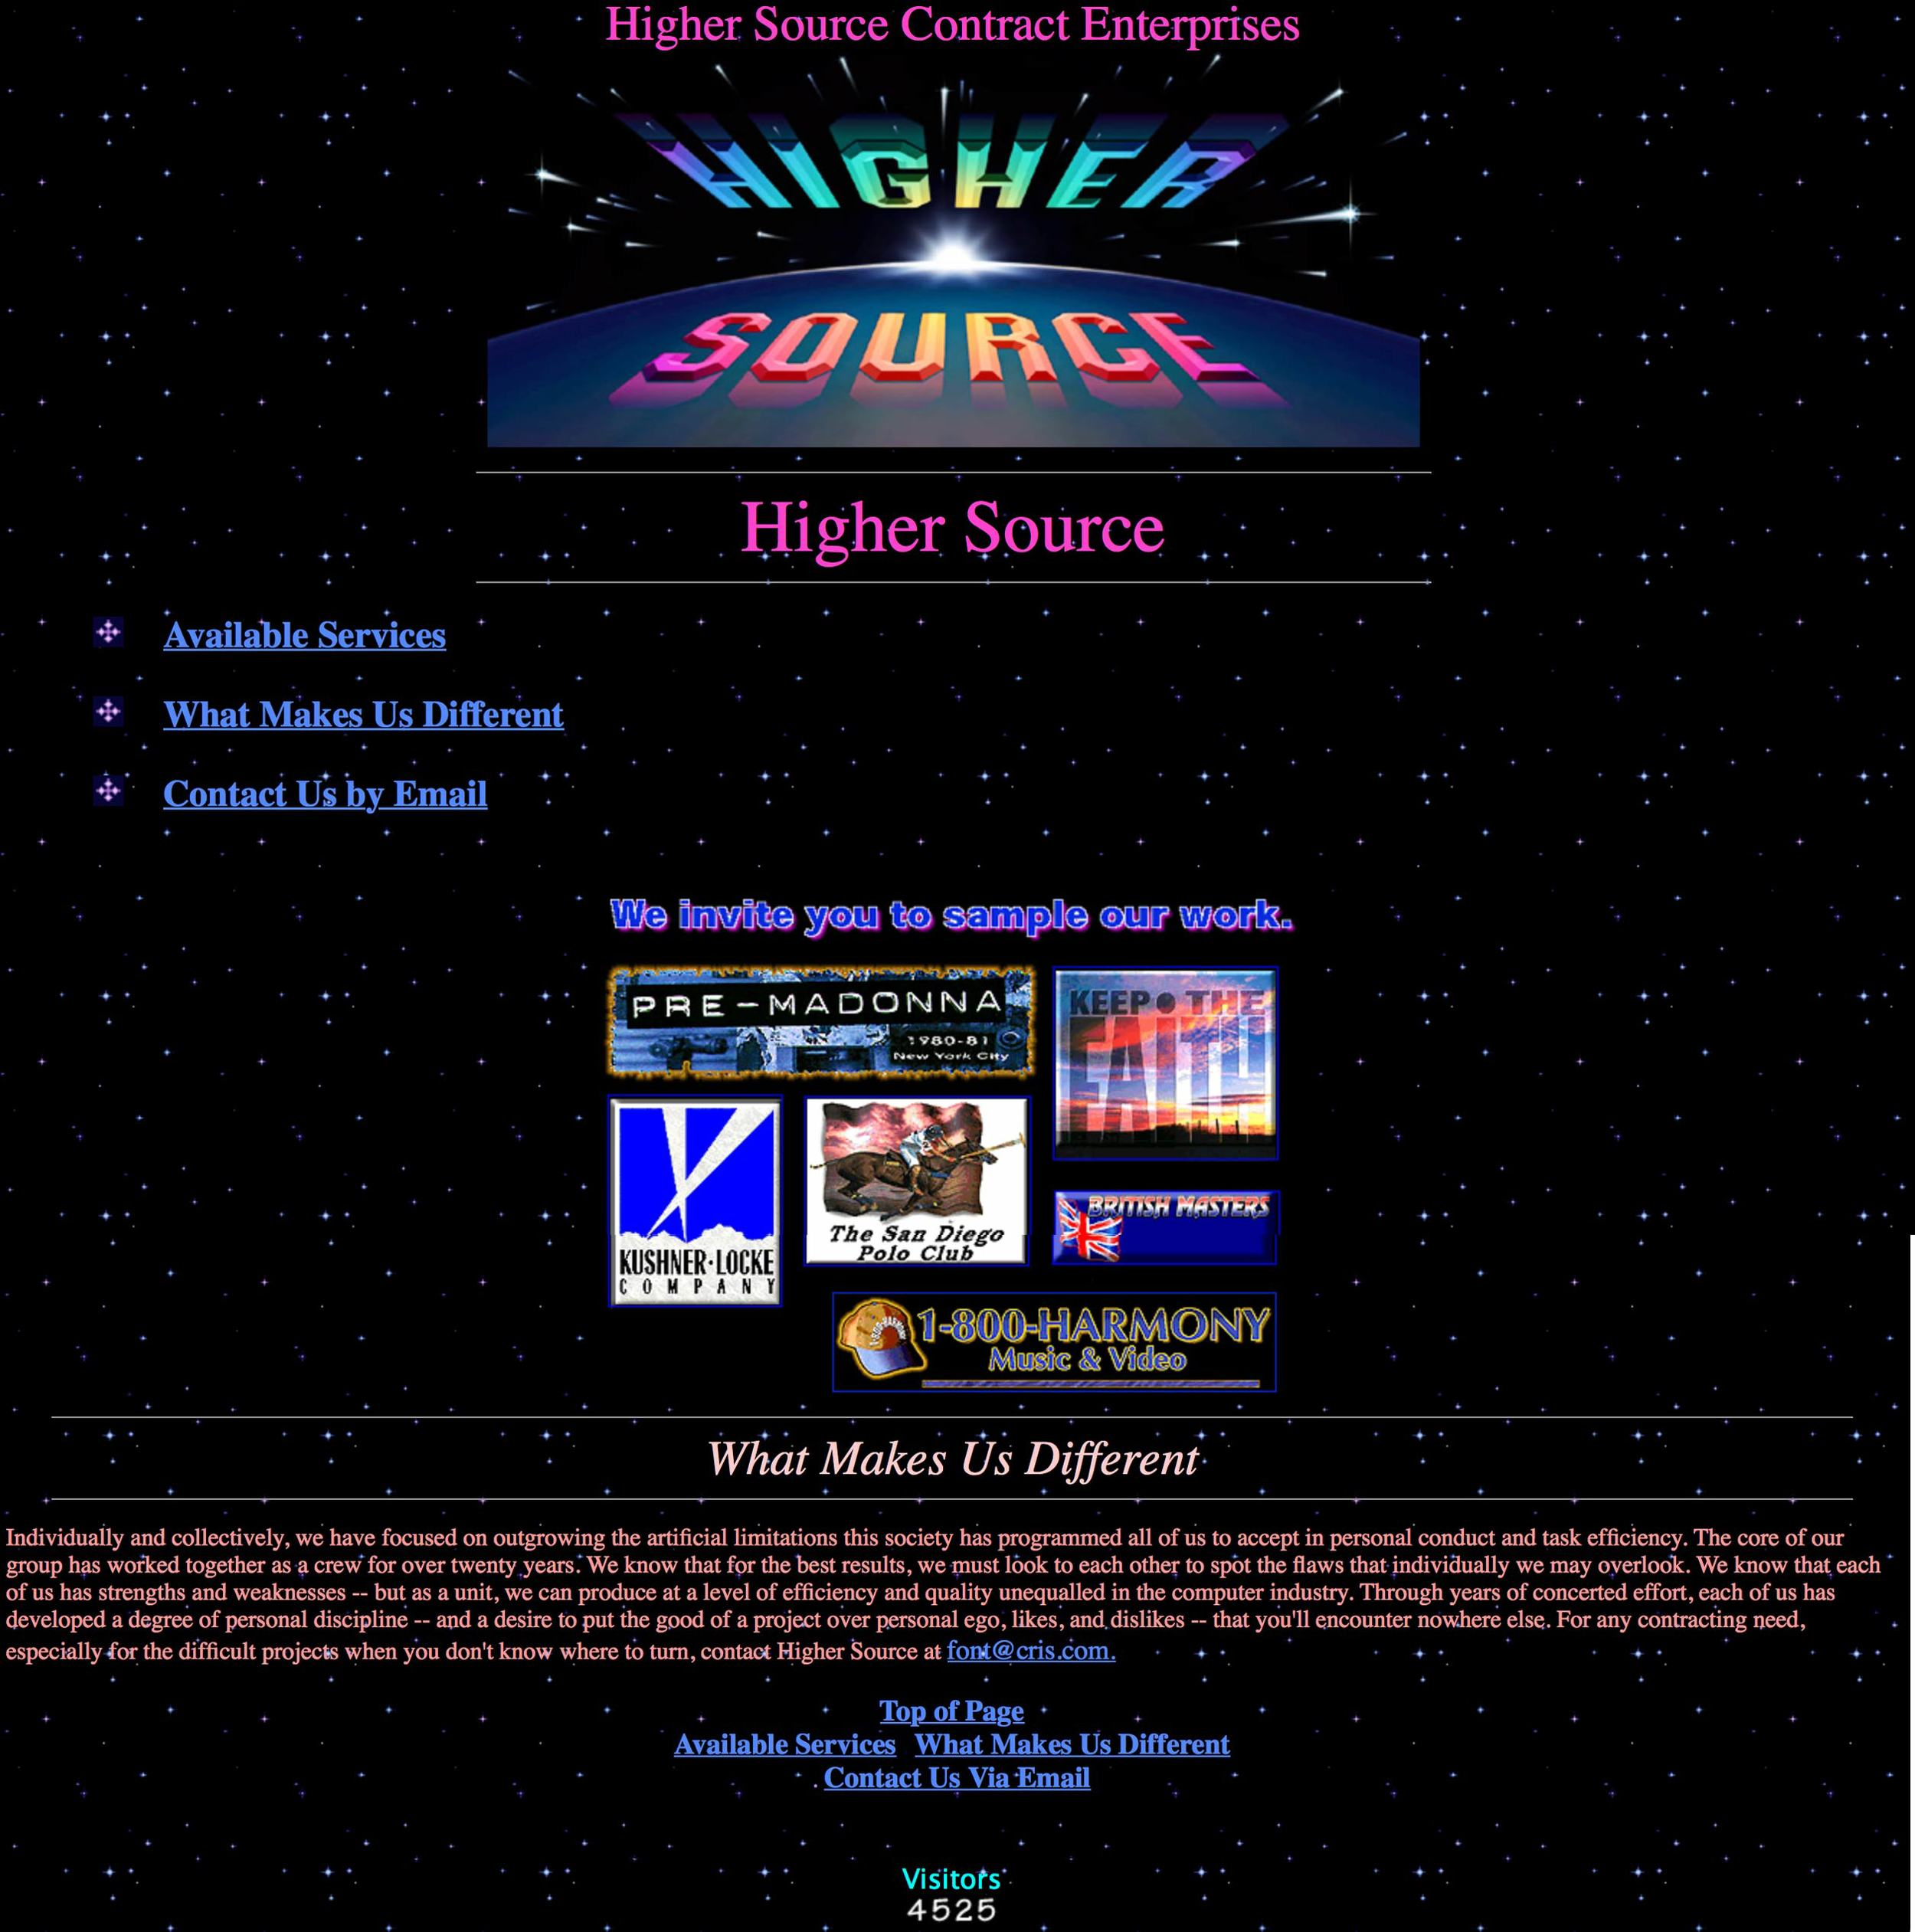 Screenshot of Higher Source's Website as of April 1997